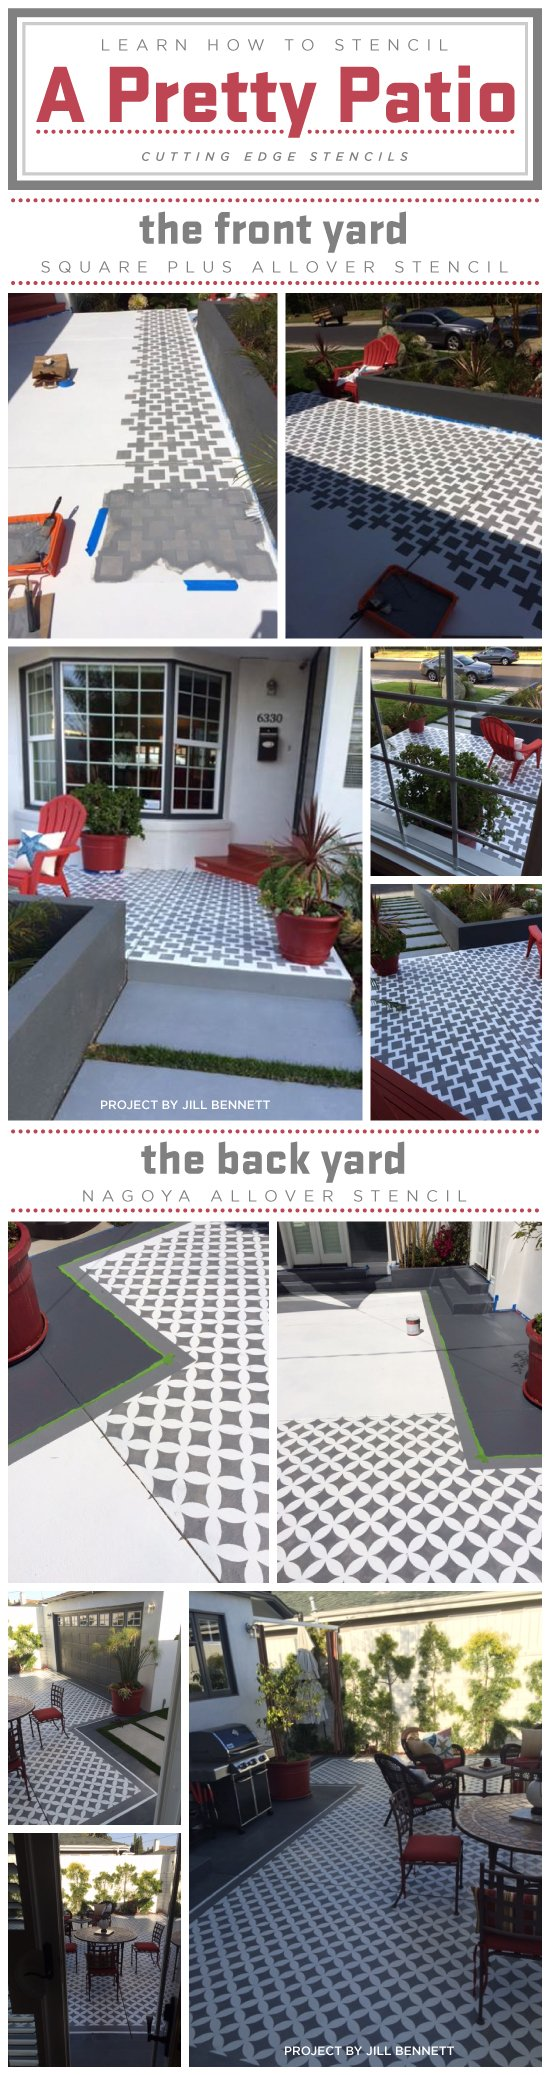 Stencil Tutorial: How to stencil a pattern on a patio using Cutting Edge Stencils. http://www.cuttingedgestencils.com/wall-stencils-stencil-designs.html